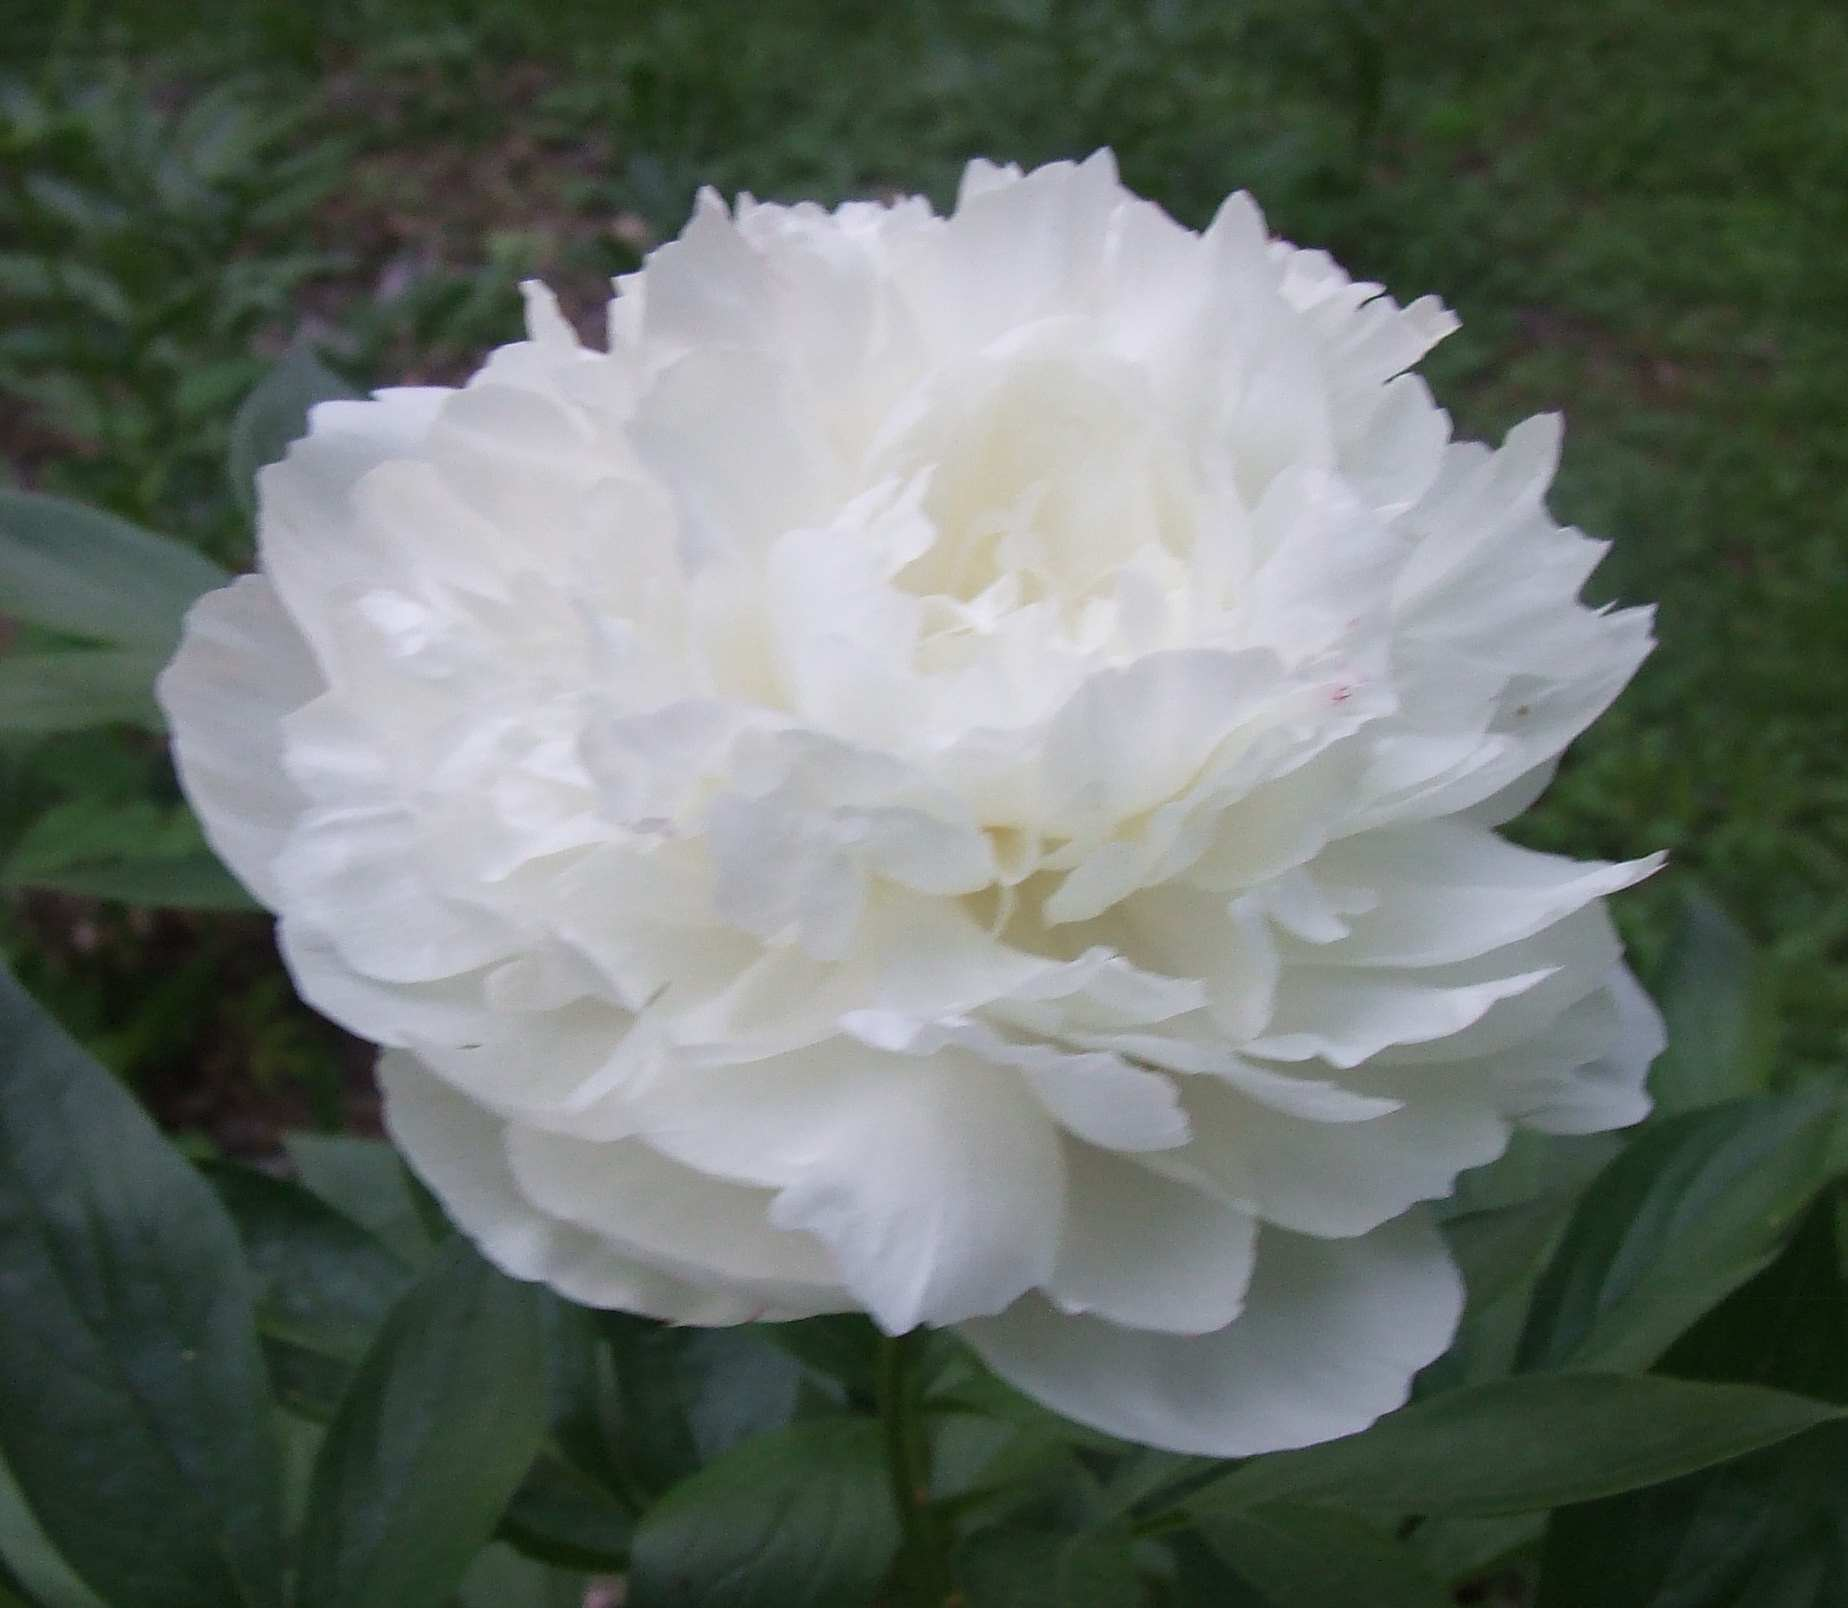 White Wedding Flowers Names And Pictures : Peony flower bloom photos from june